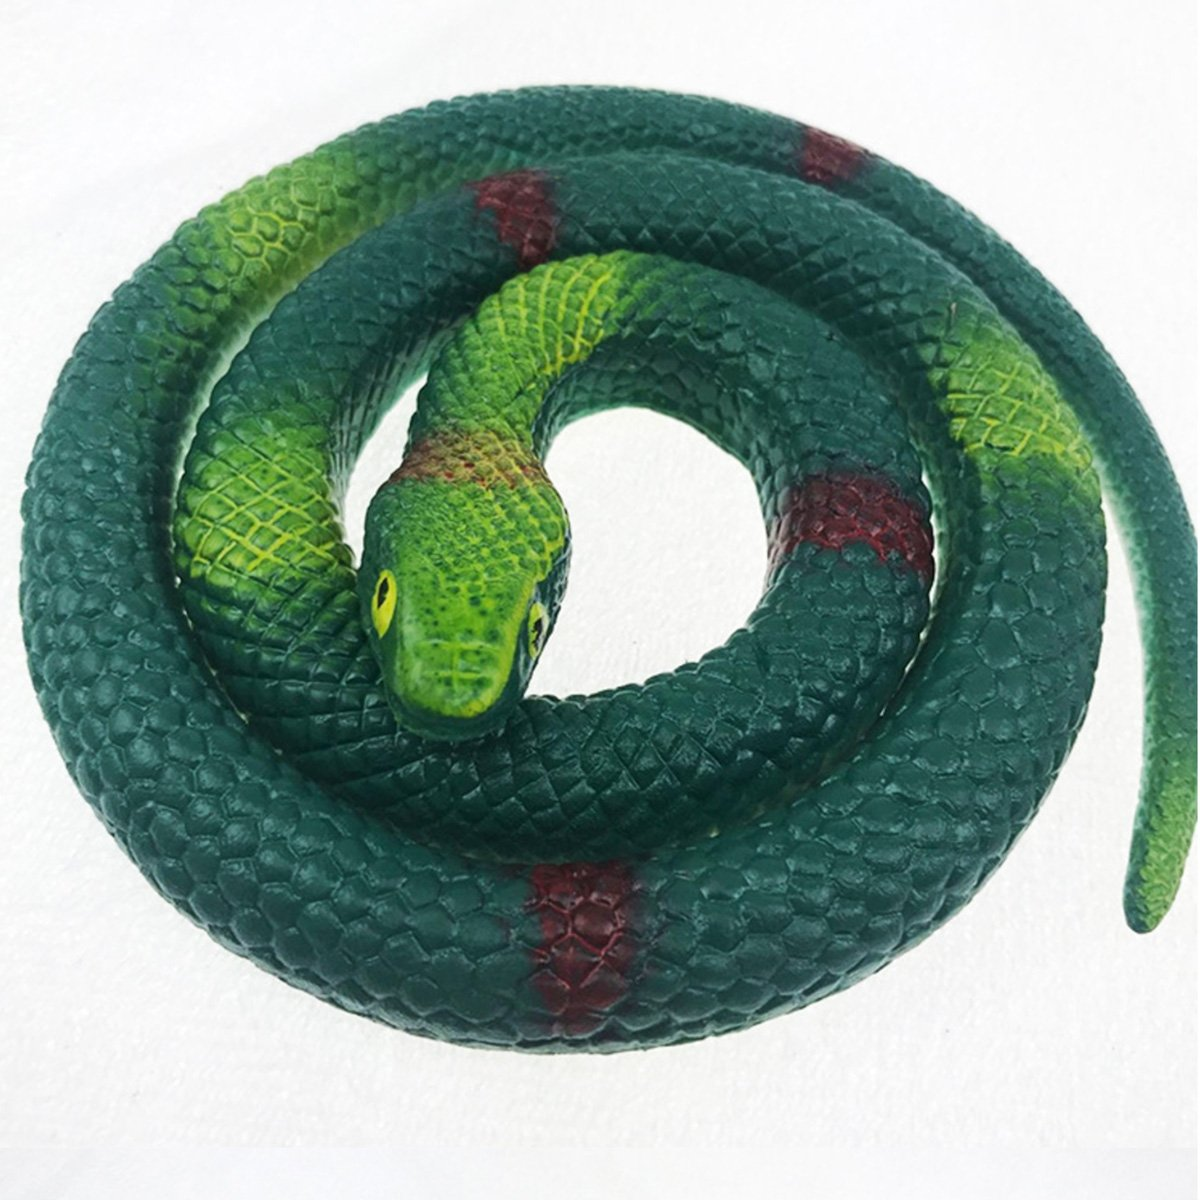 """Fake Rubber Snake Large 30/"""" Decoration Prop Halloween Scary Colorful Snakes NEW"""